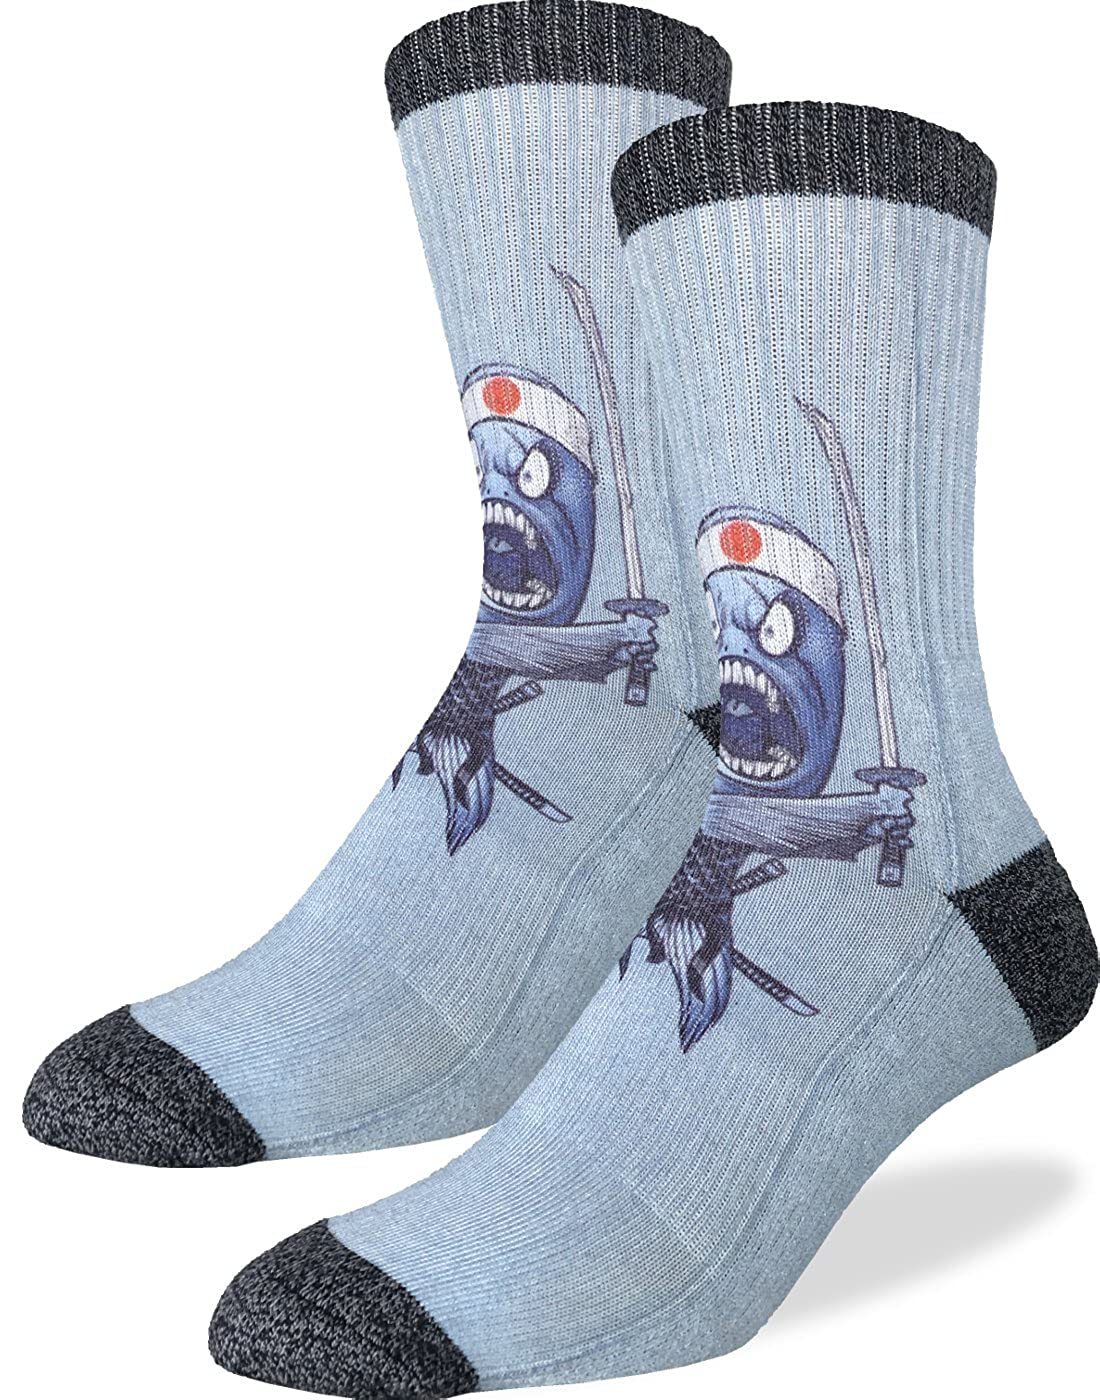 Good Luck Sock Men's Samurai Sushi Fish Socks - blue, Adult Shoe size 8-13 4026